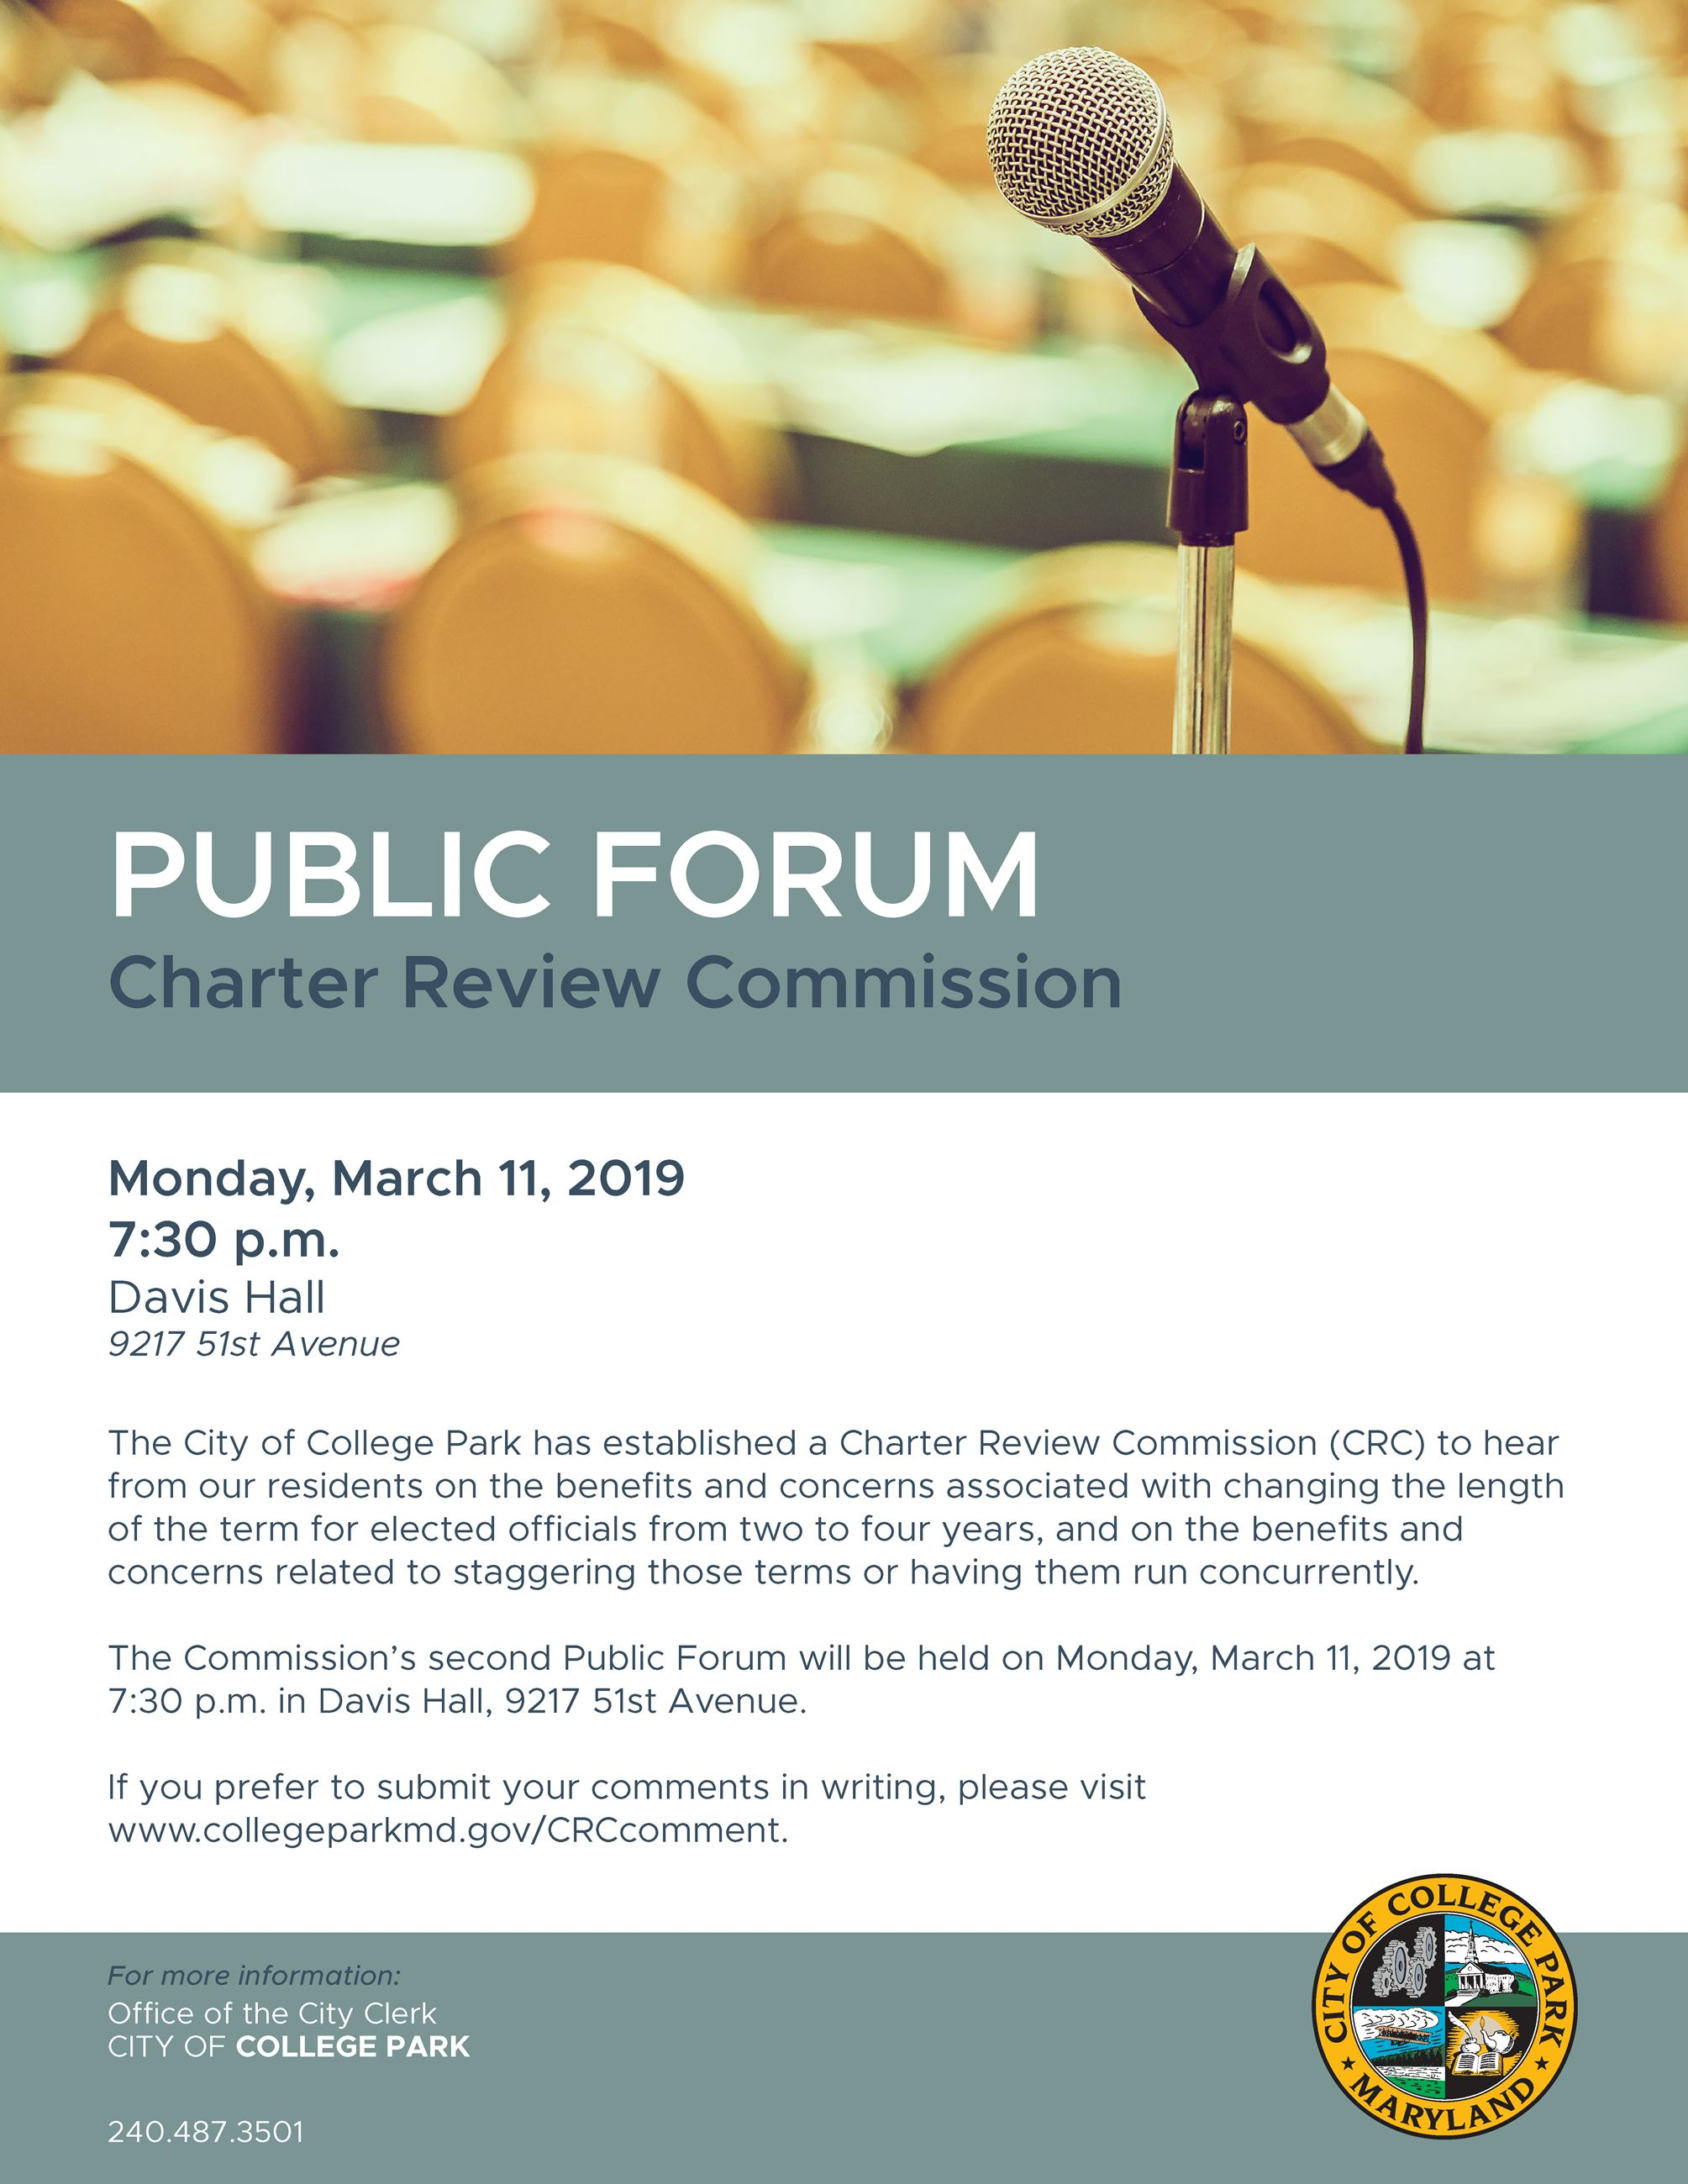 Public Forum 2 - Charter Review Commission